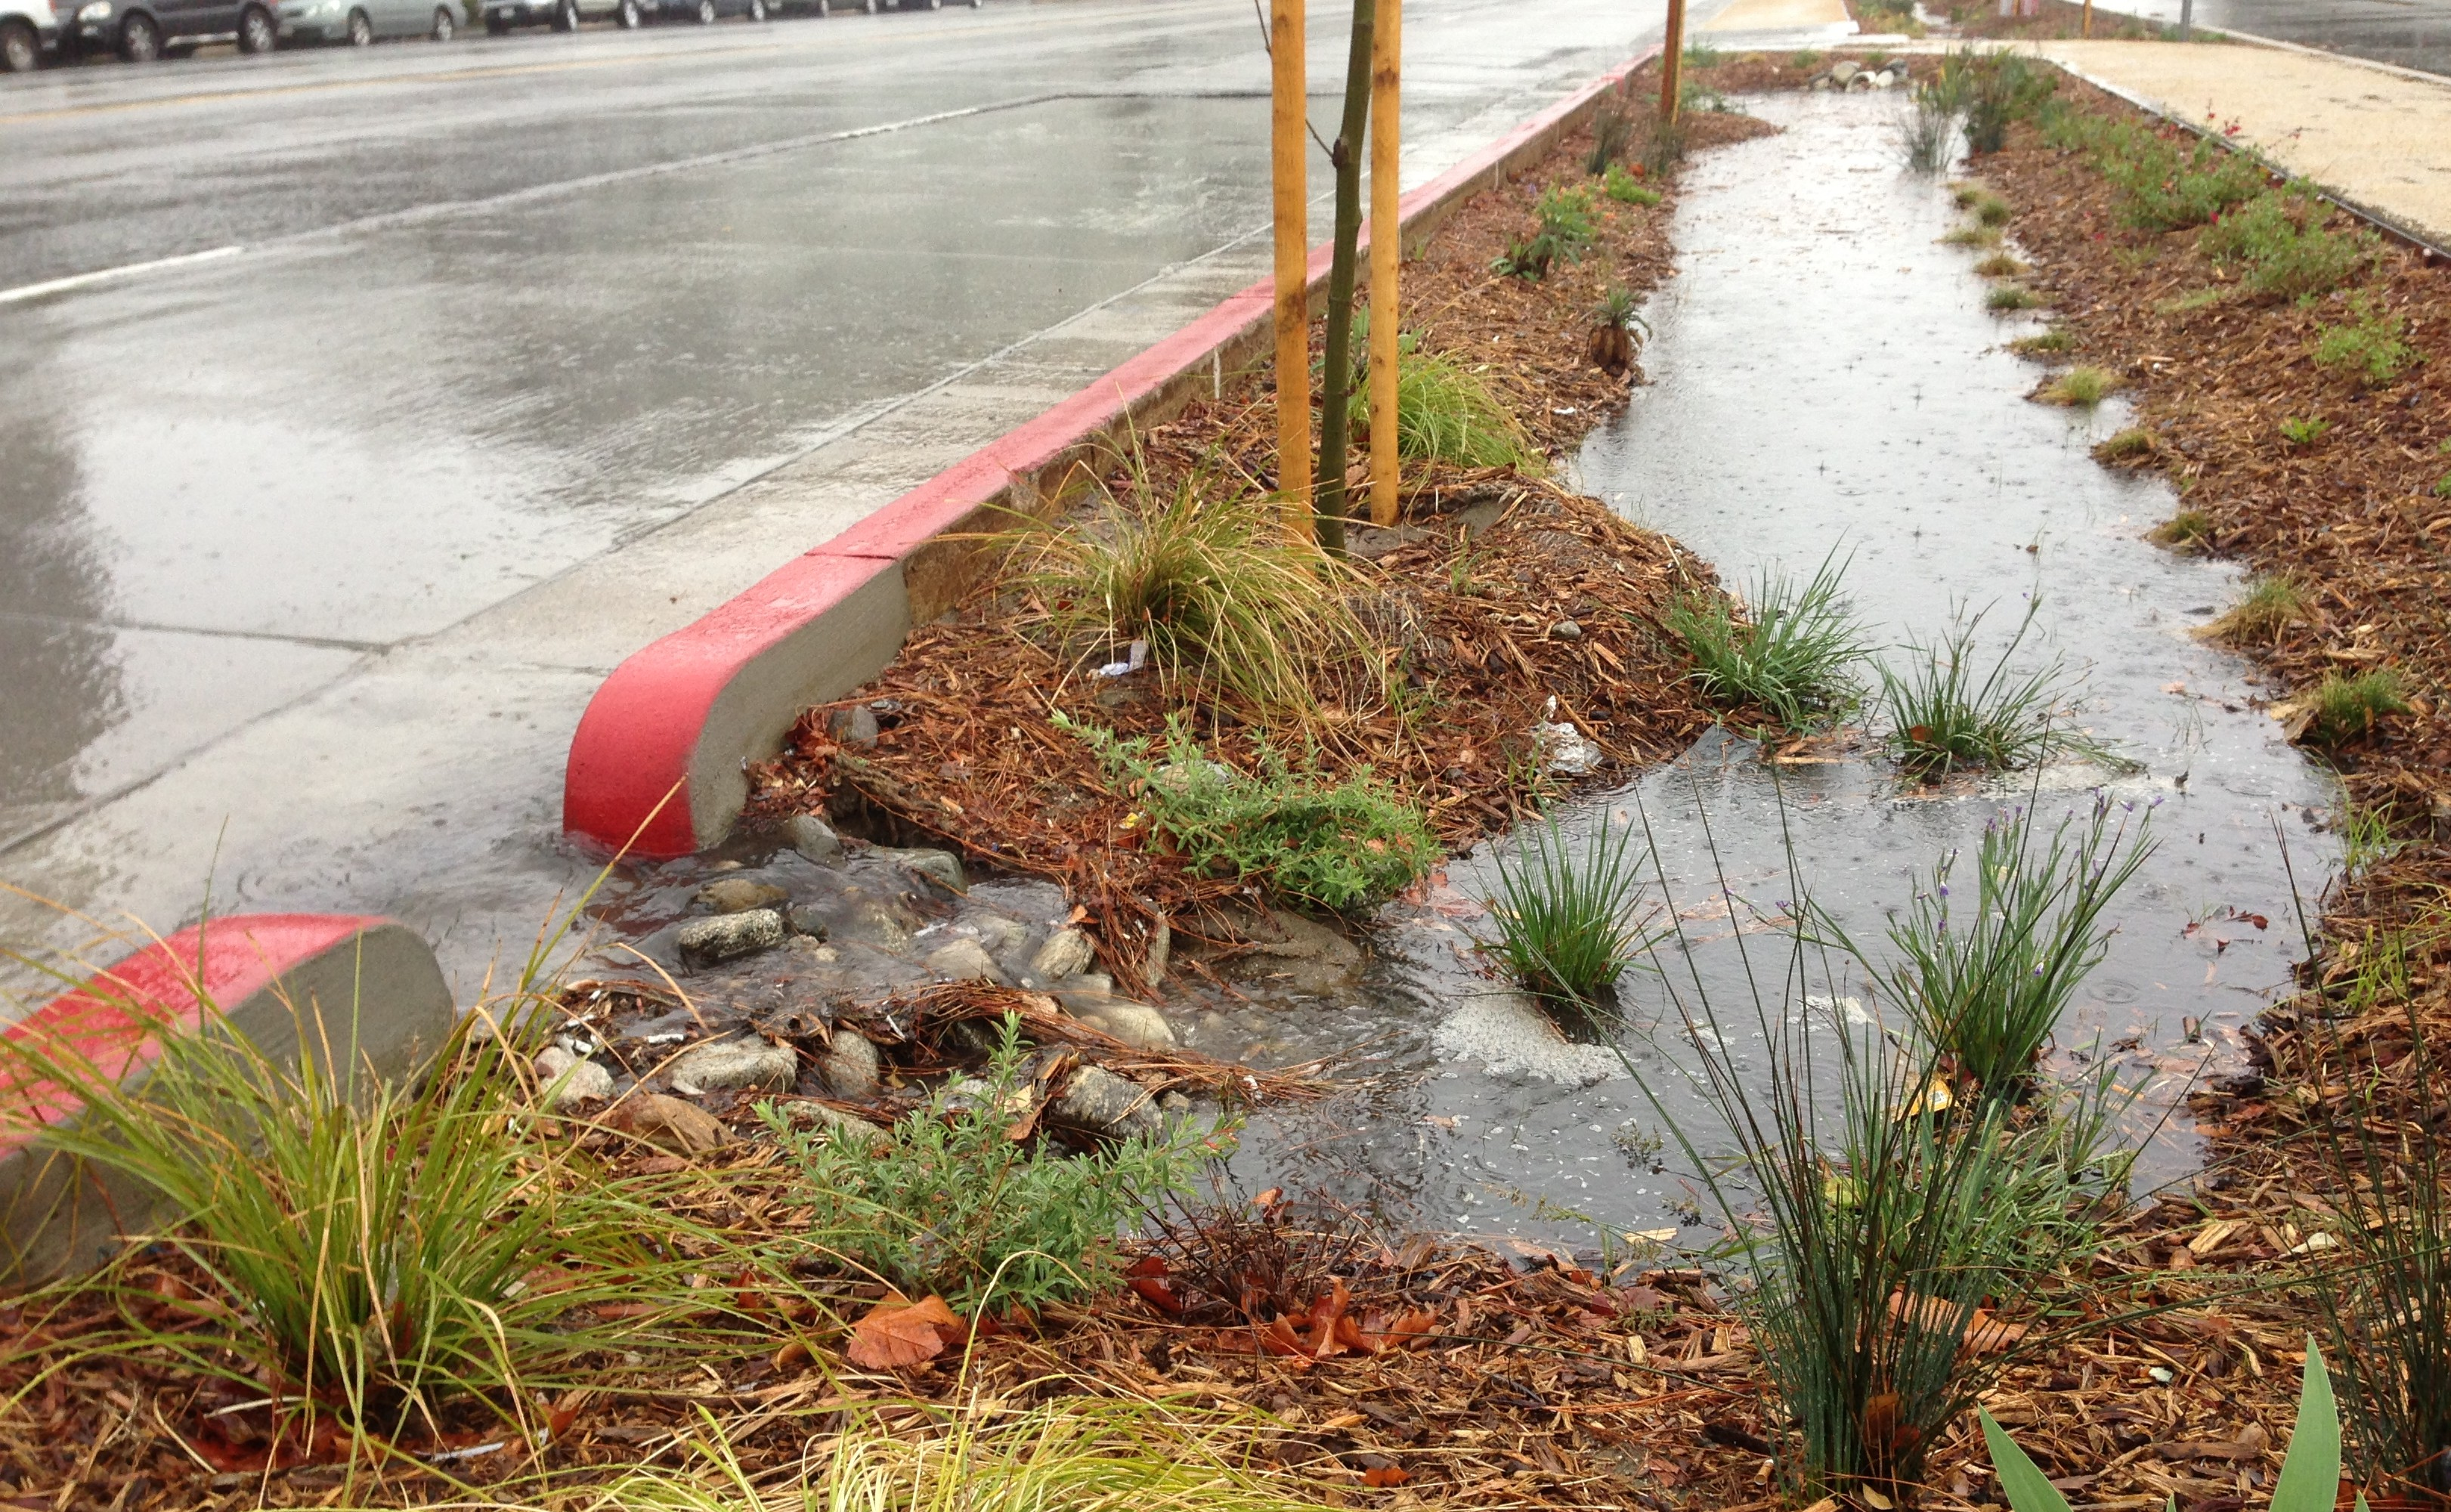 Upstream end of the Woodman Avenue project where the curb has been opened to allow water to flow into the vegetated swale. photo: Joe Linton/LA Streetsblog